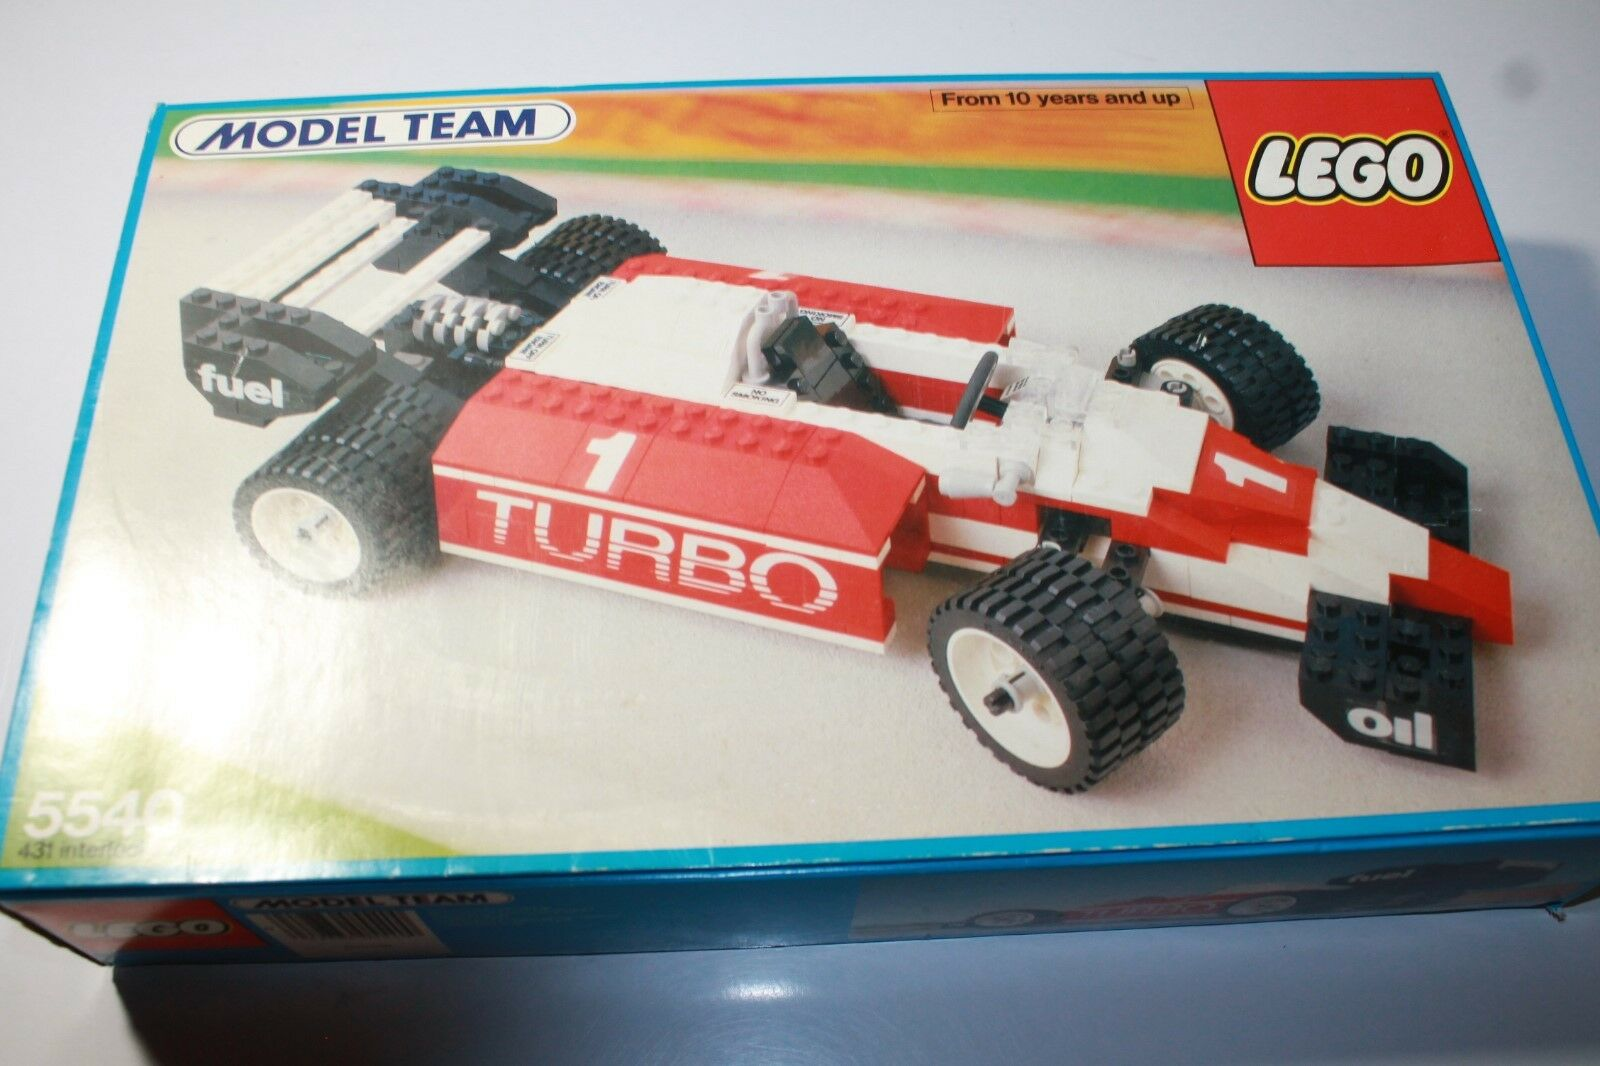 1986 LEGO Model Team 5540 Indy Formula 1 Car Airplane NEW IN OPEN BOX